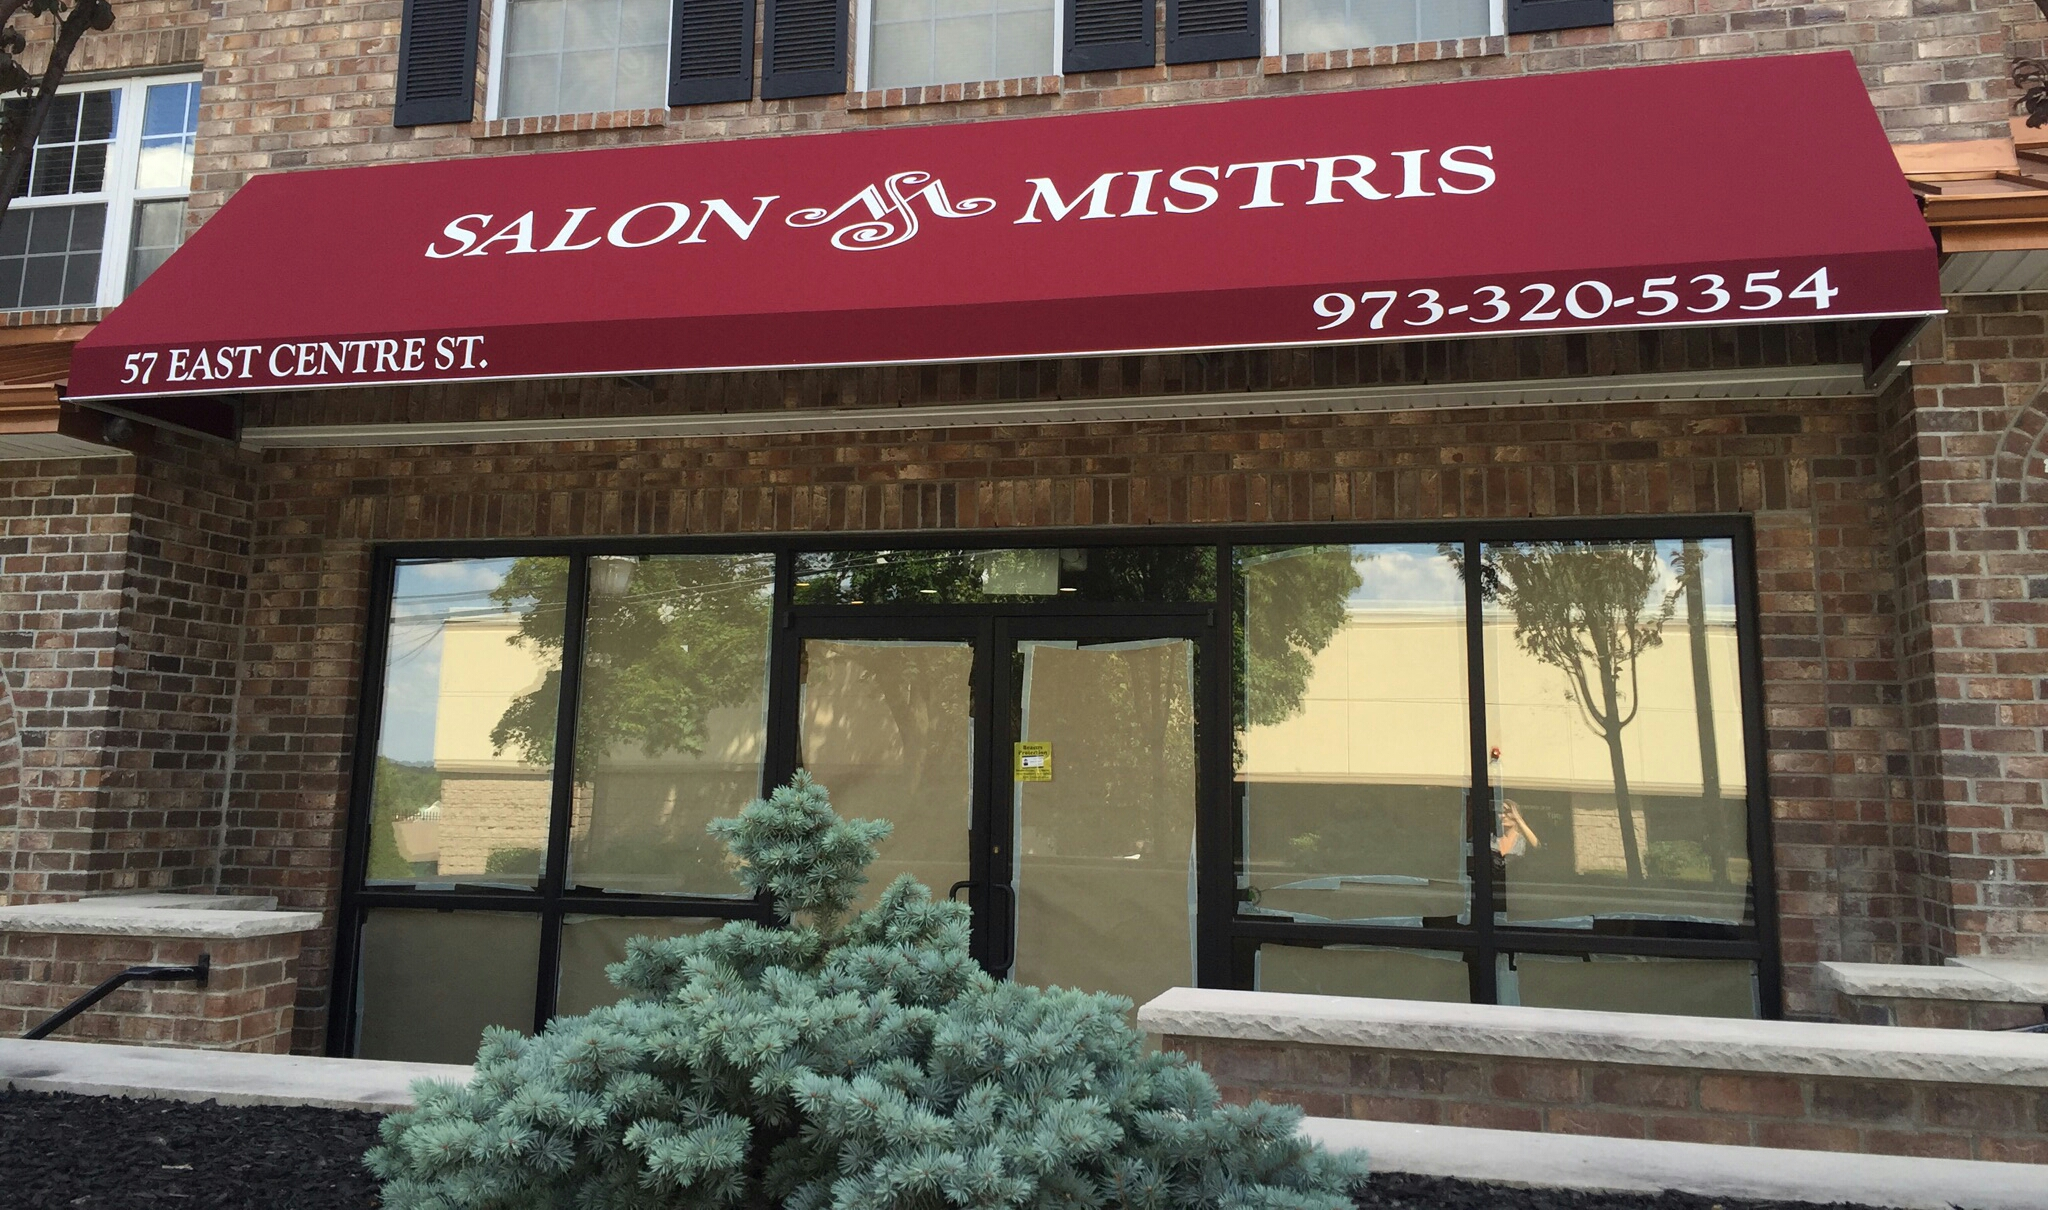 Salon Mistris, Nutley NJ